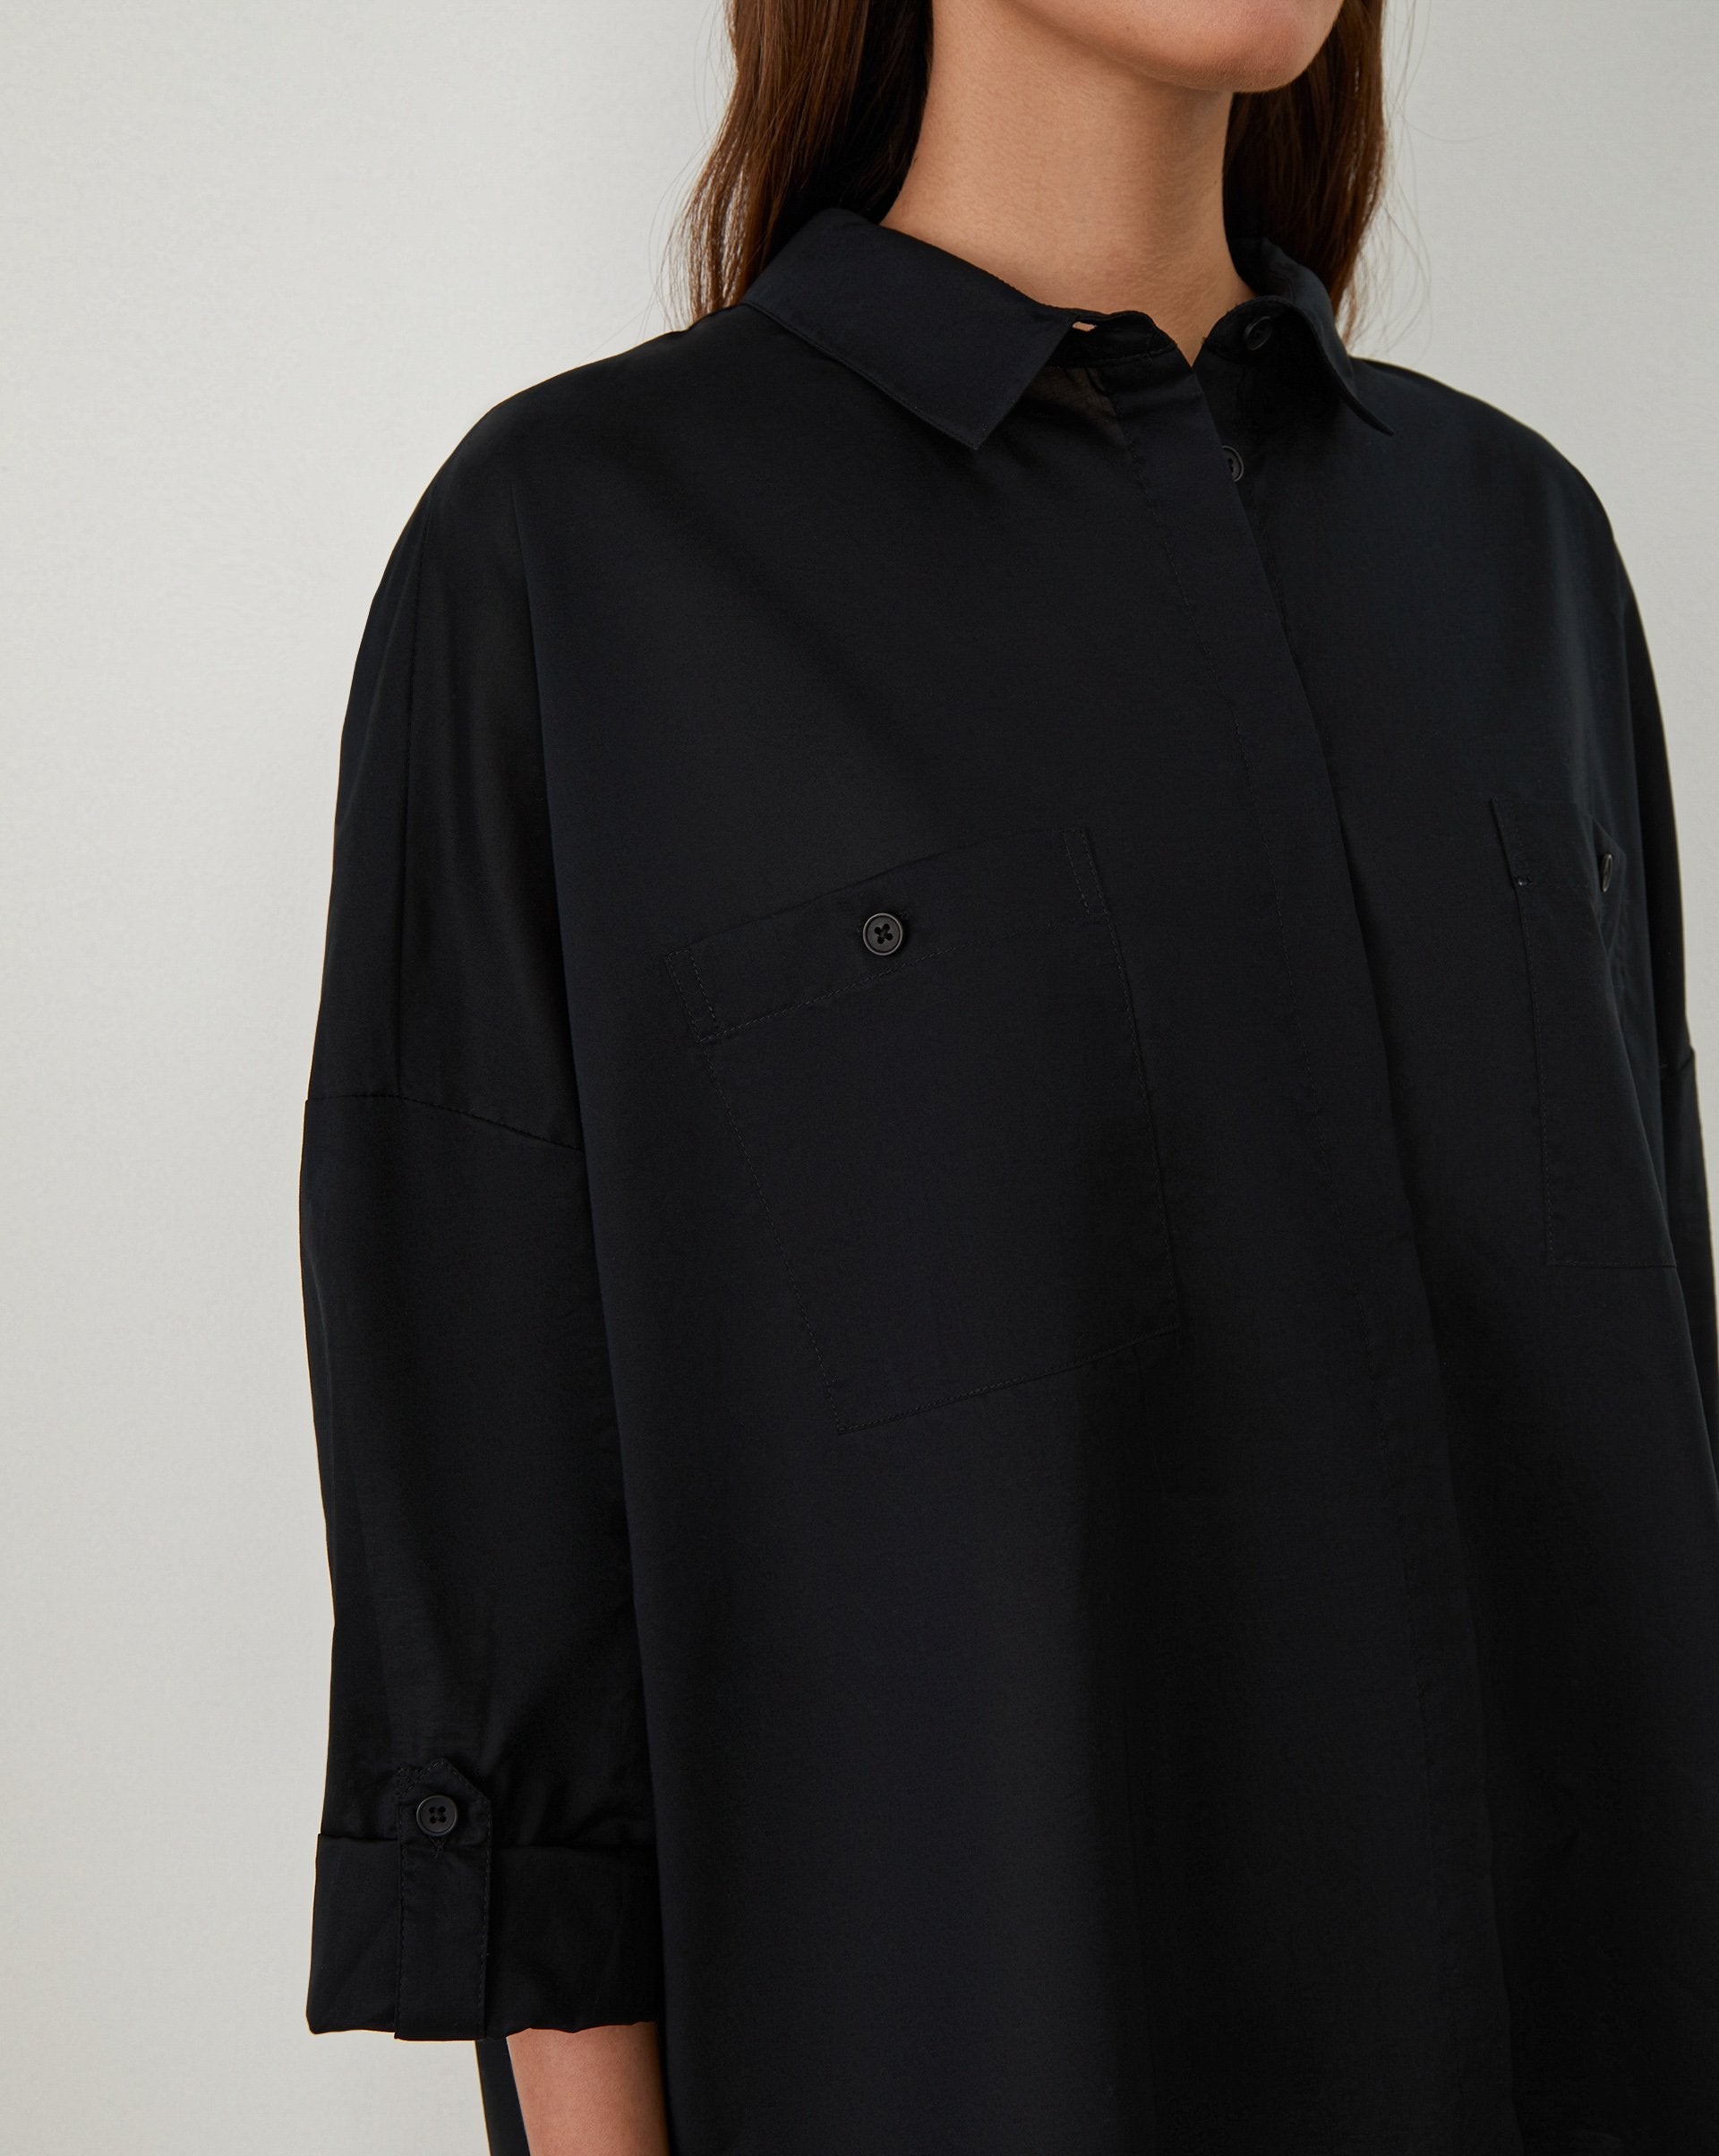 Oversized button up shirt - 12 STOREEZ